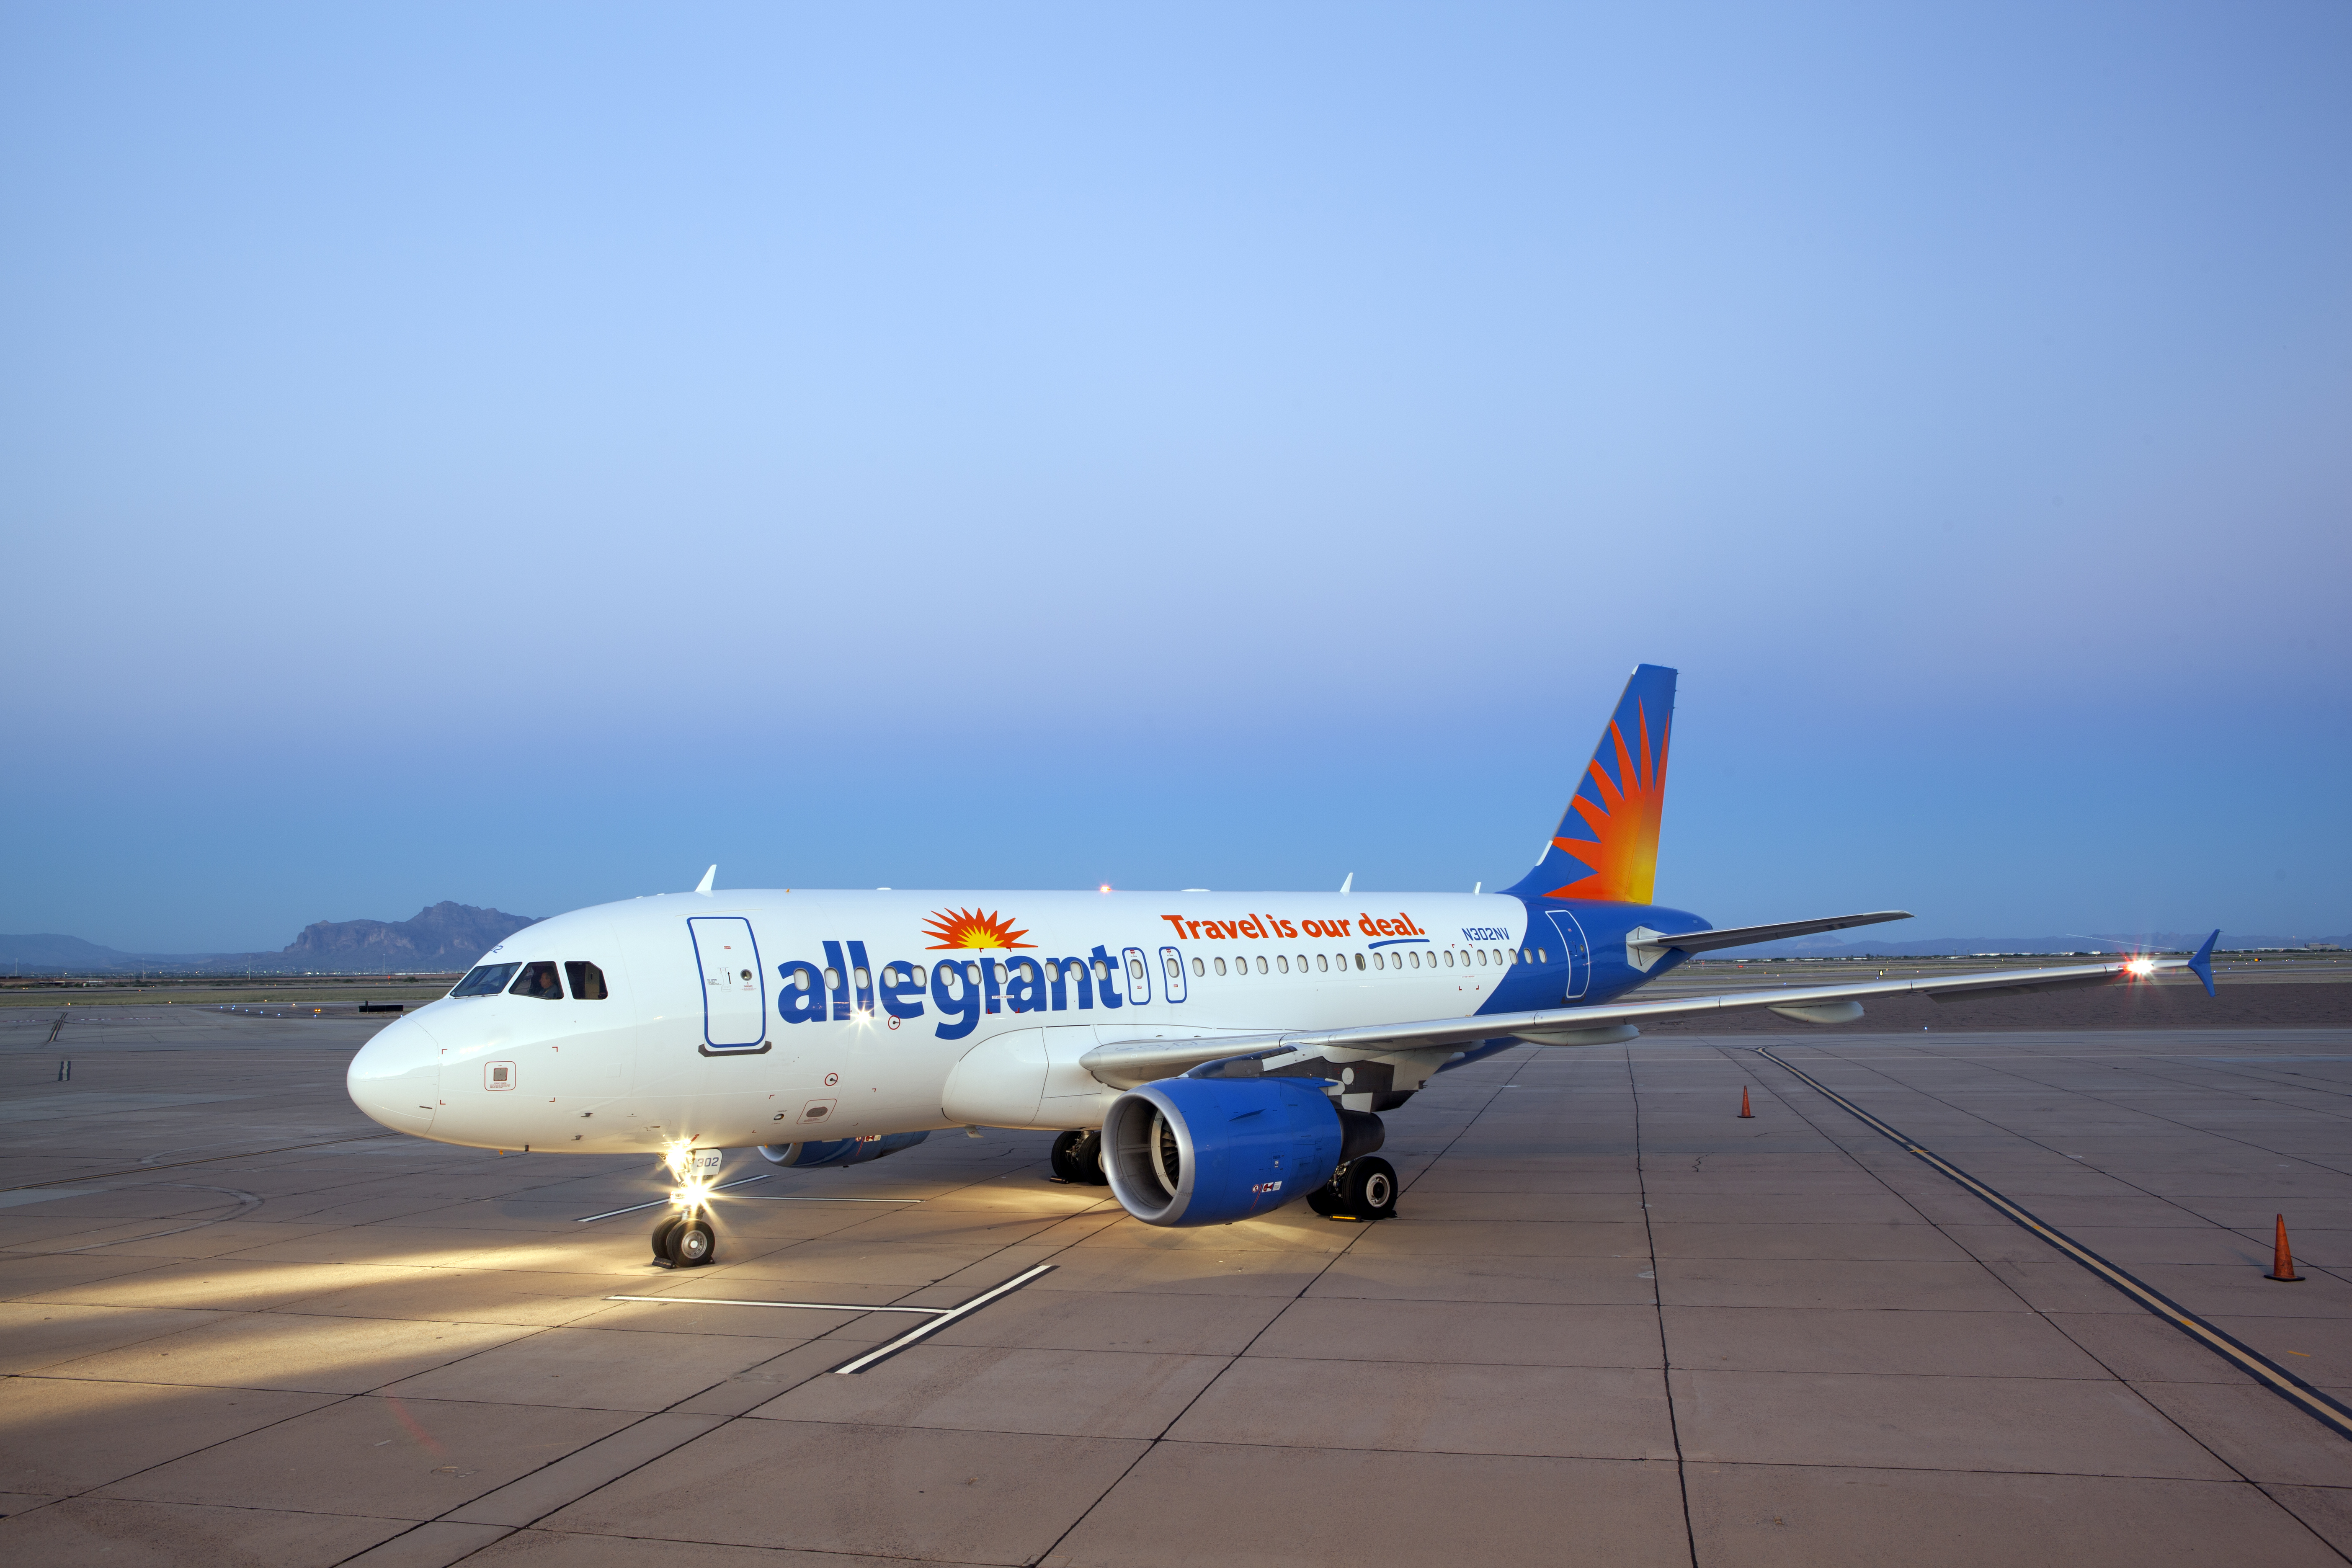 Allegiant Announces New Nonstop Service From Portland to 3 Destinations With One-Way Fares As Low As $49*